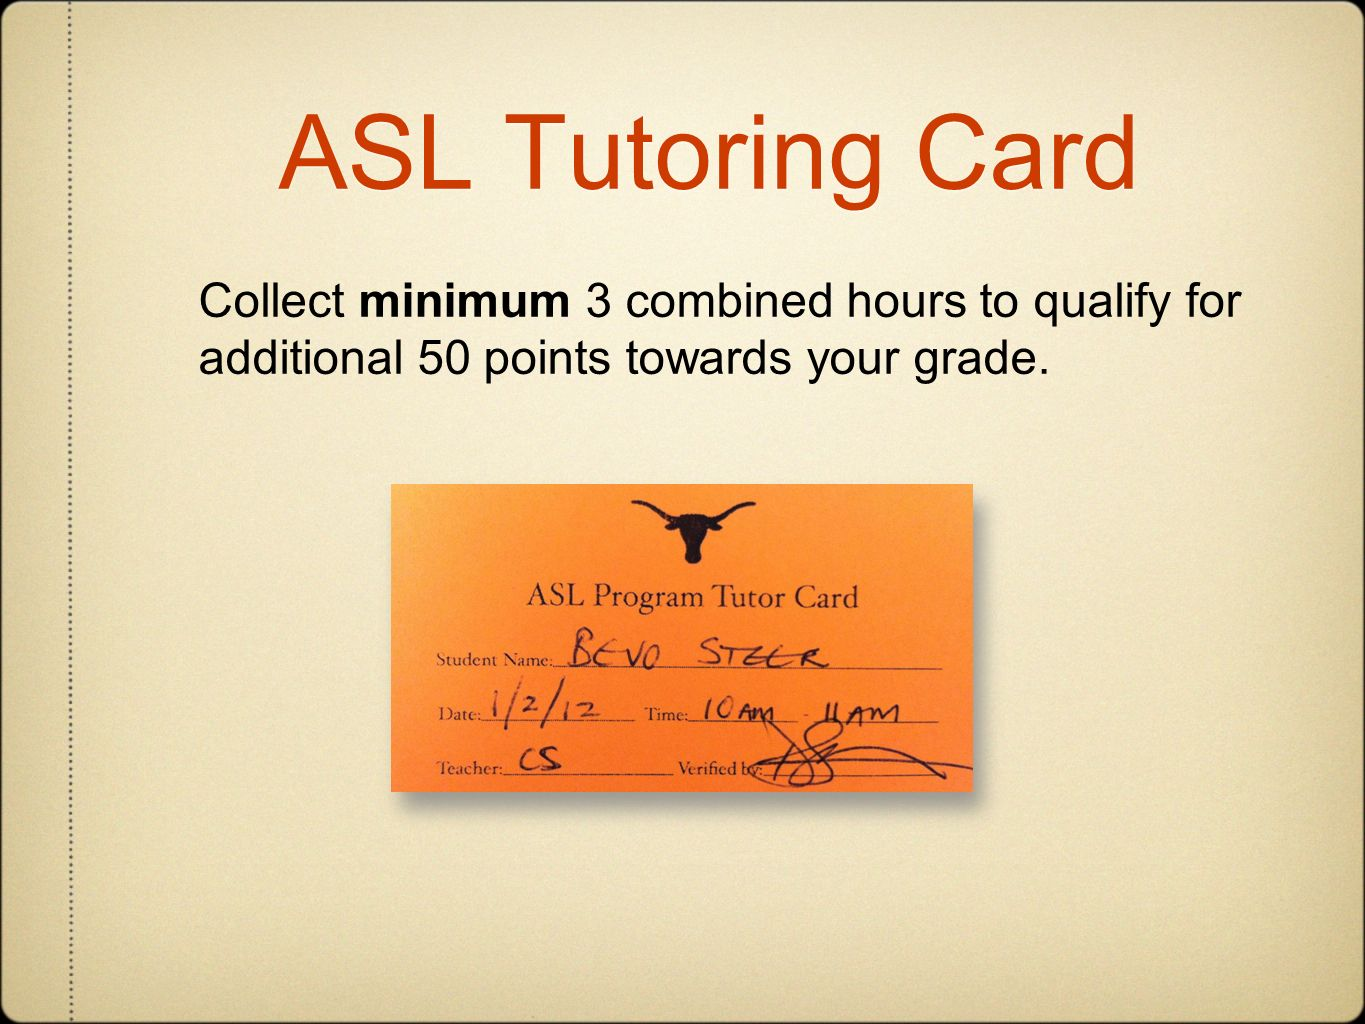 ASL Tutoring Card Collect minimum 3 combined hours to qualify for additional 50 points towards your grade.